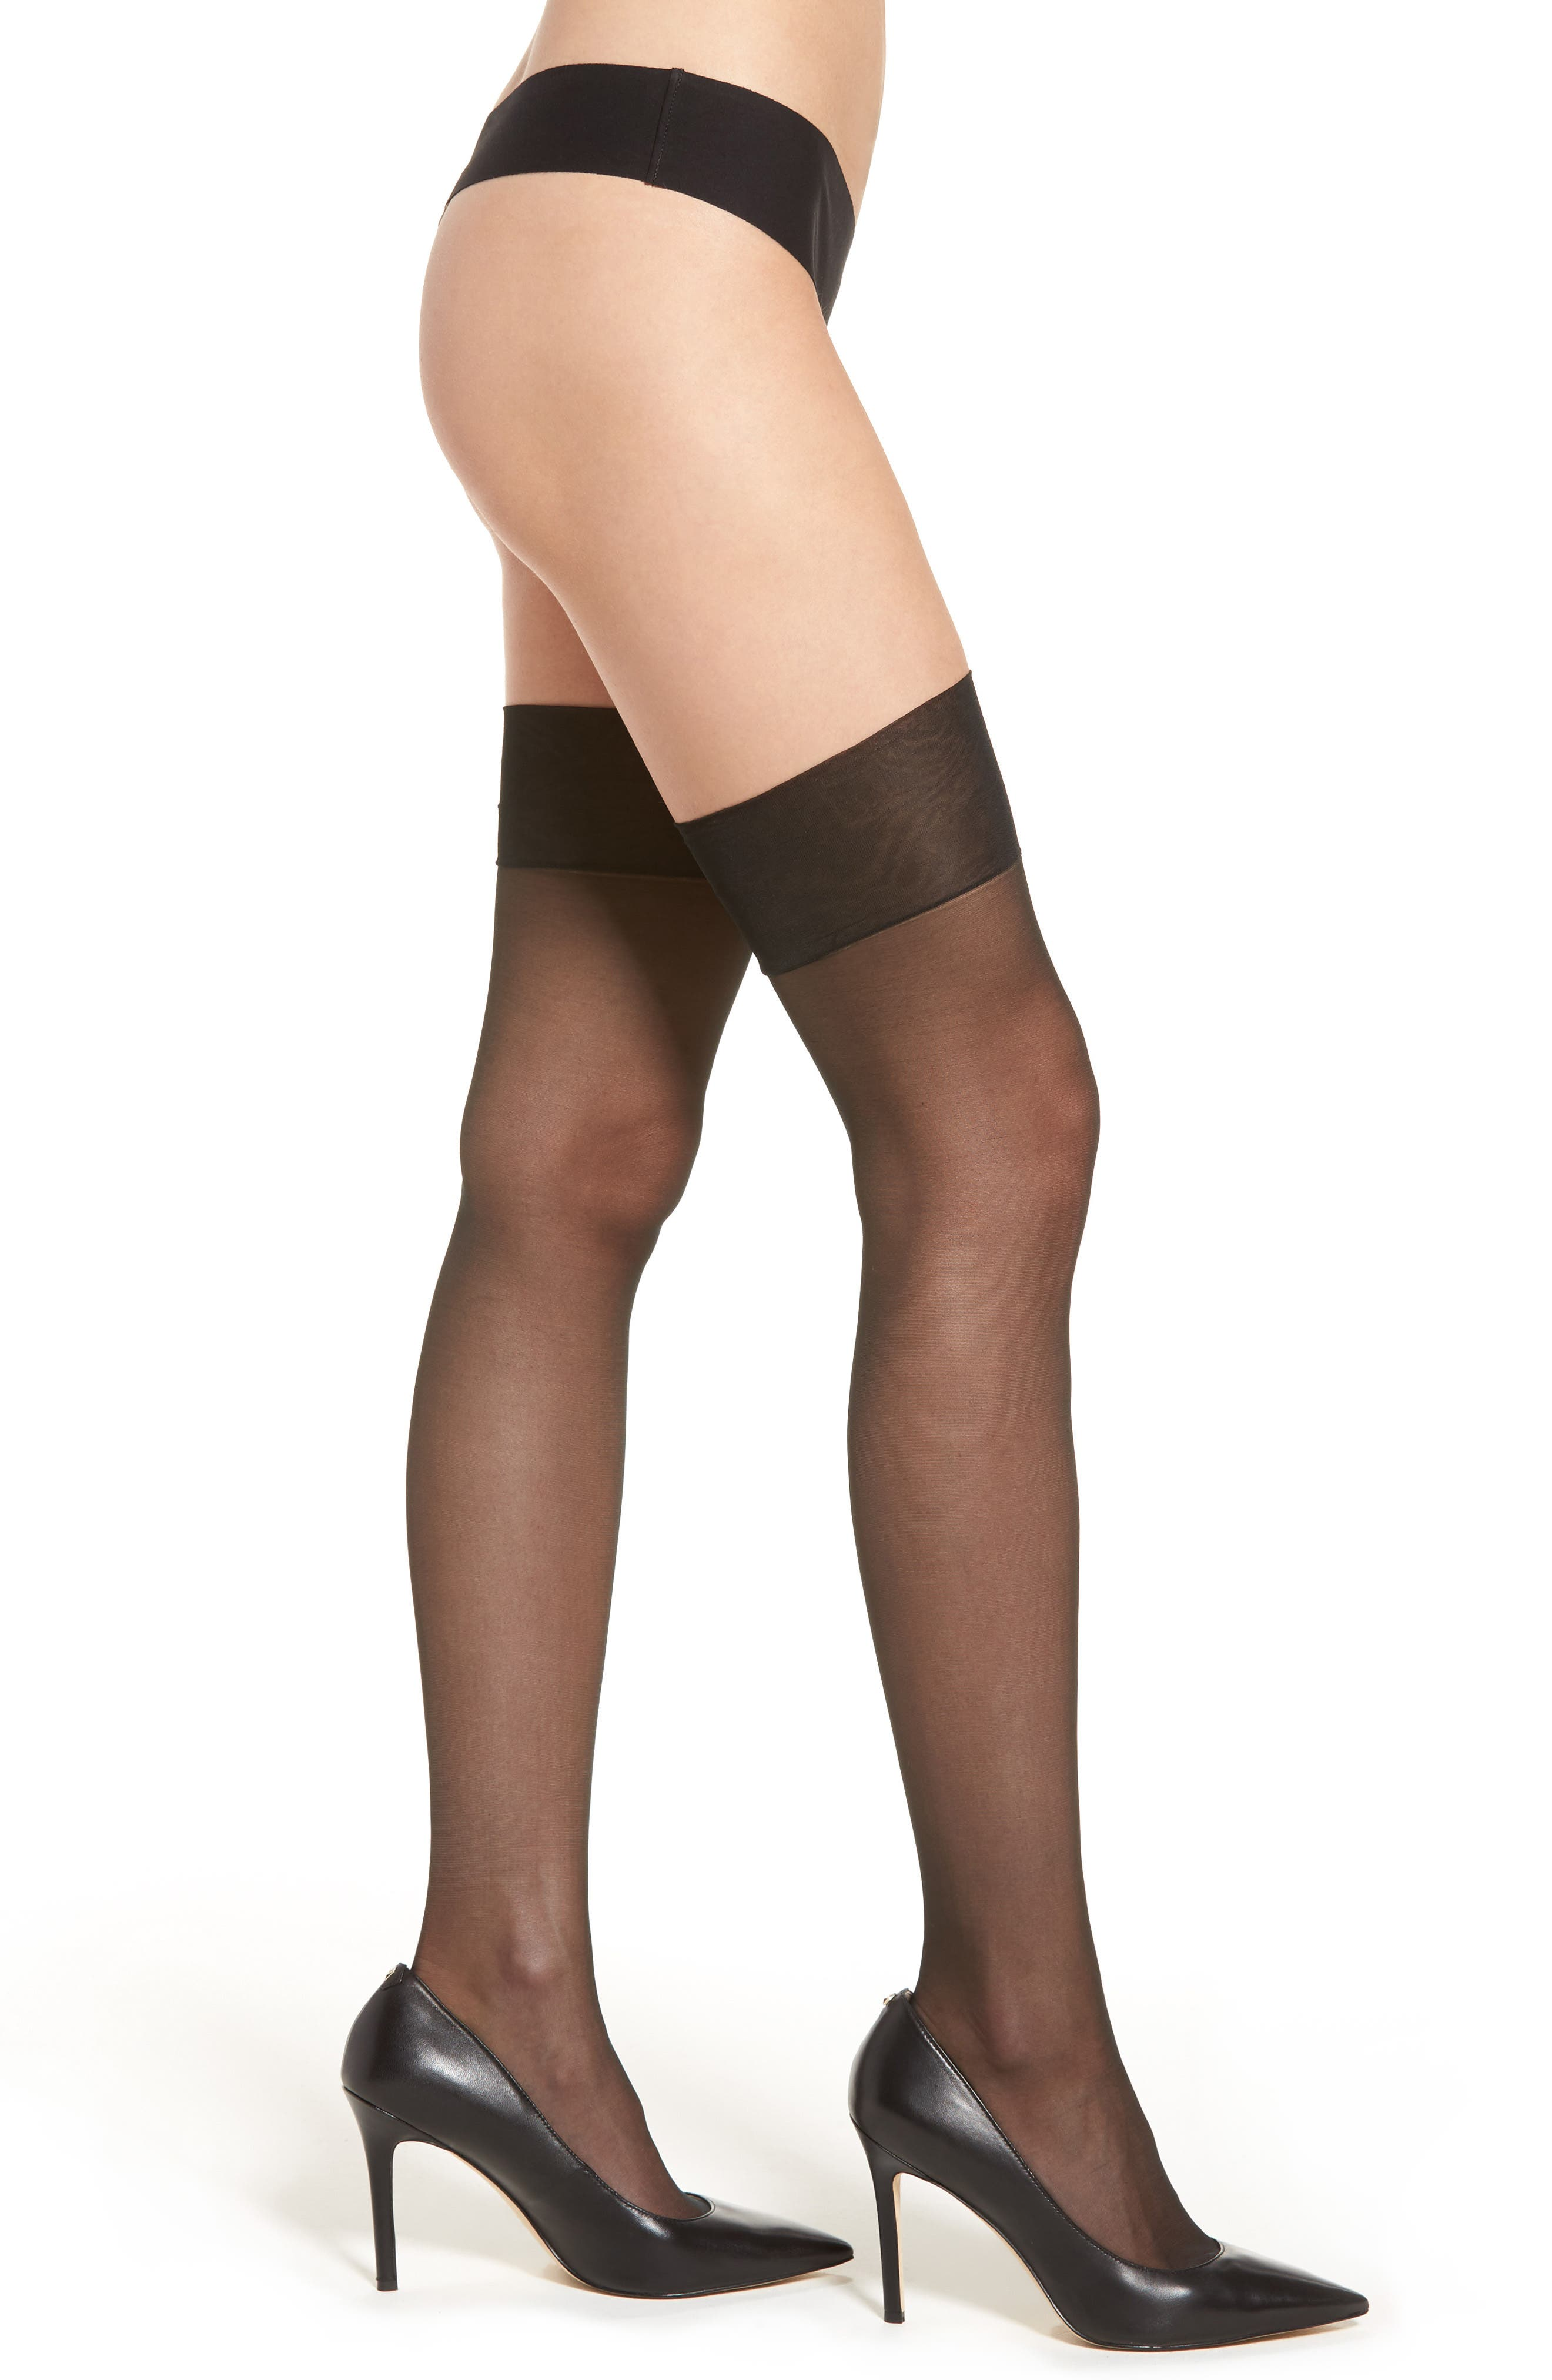 Nordstrom Stockings (3 for $36)